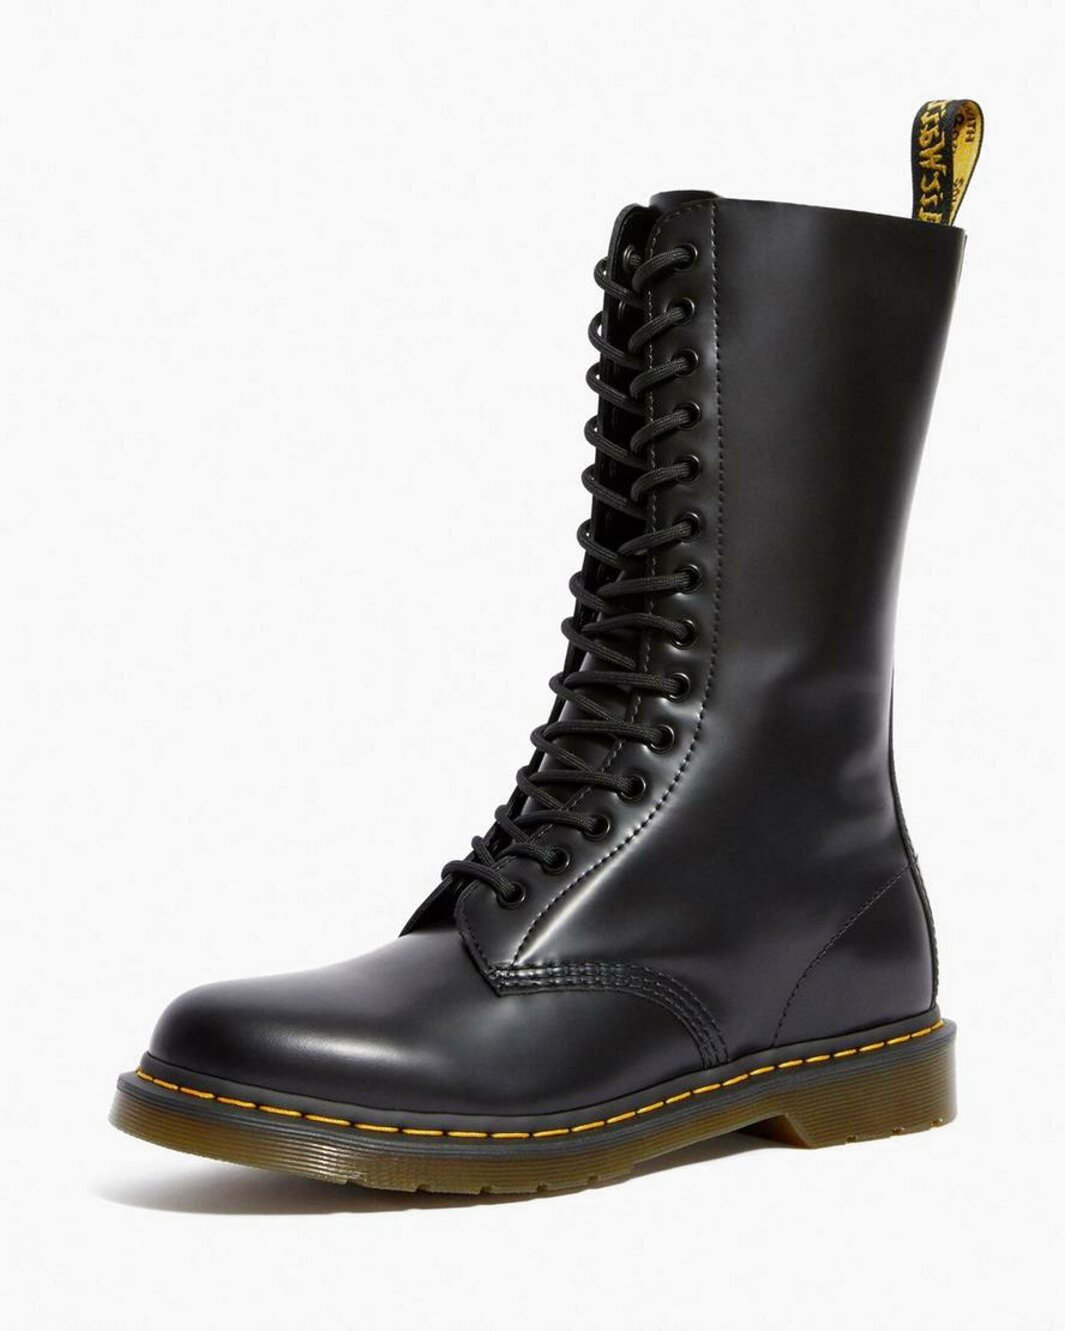 Dr Martens 14 Eye for sale in UK | View